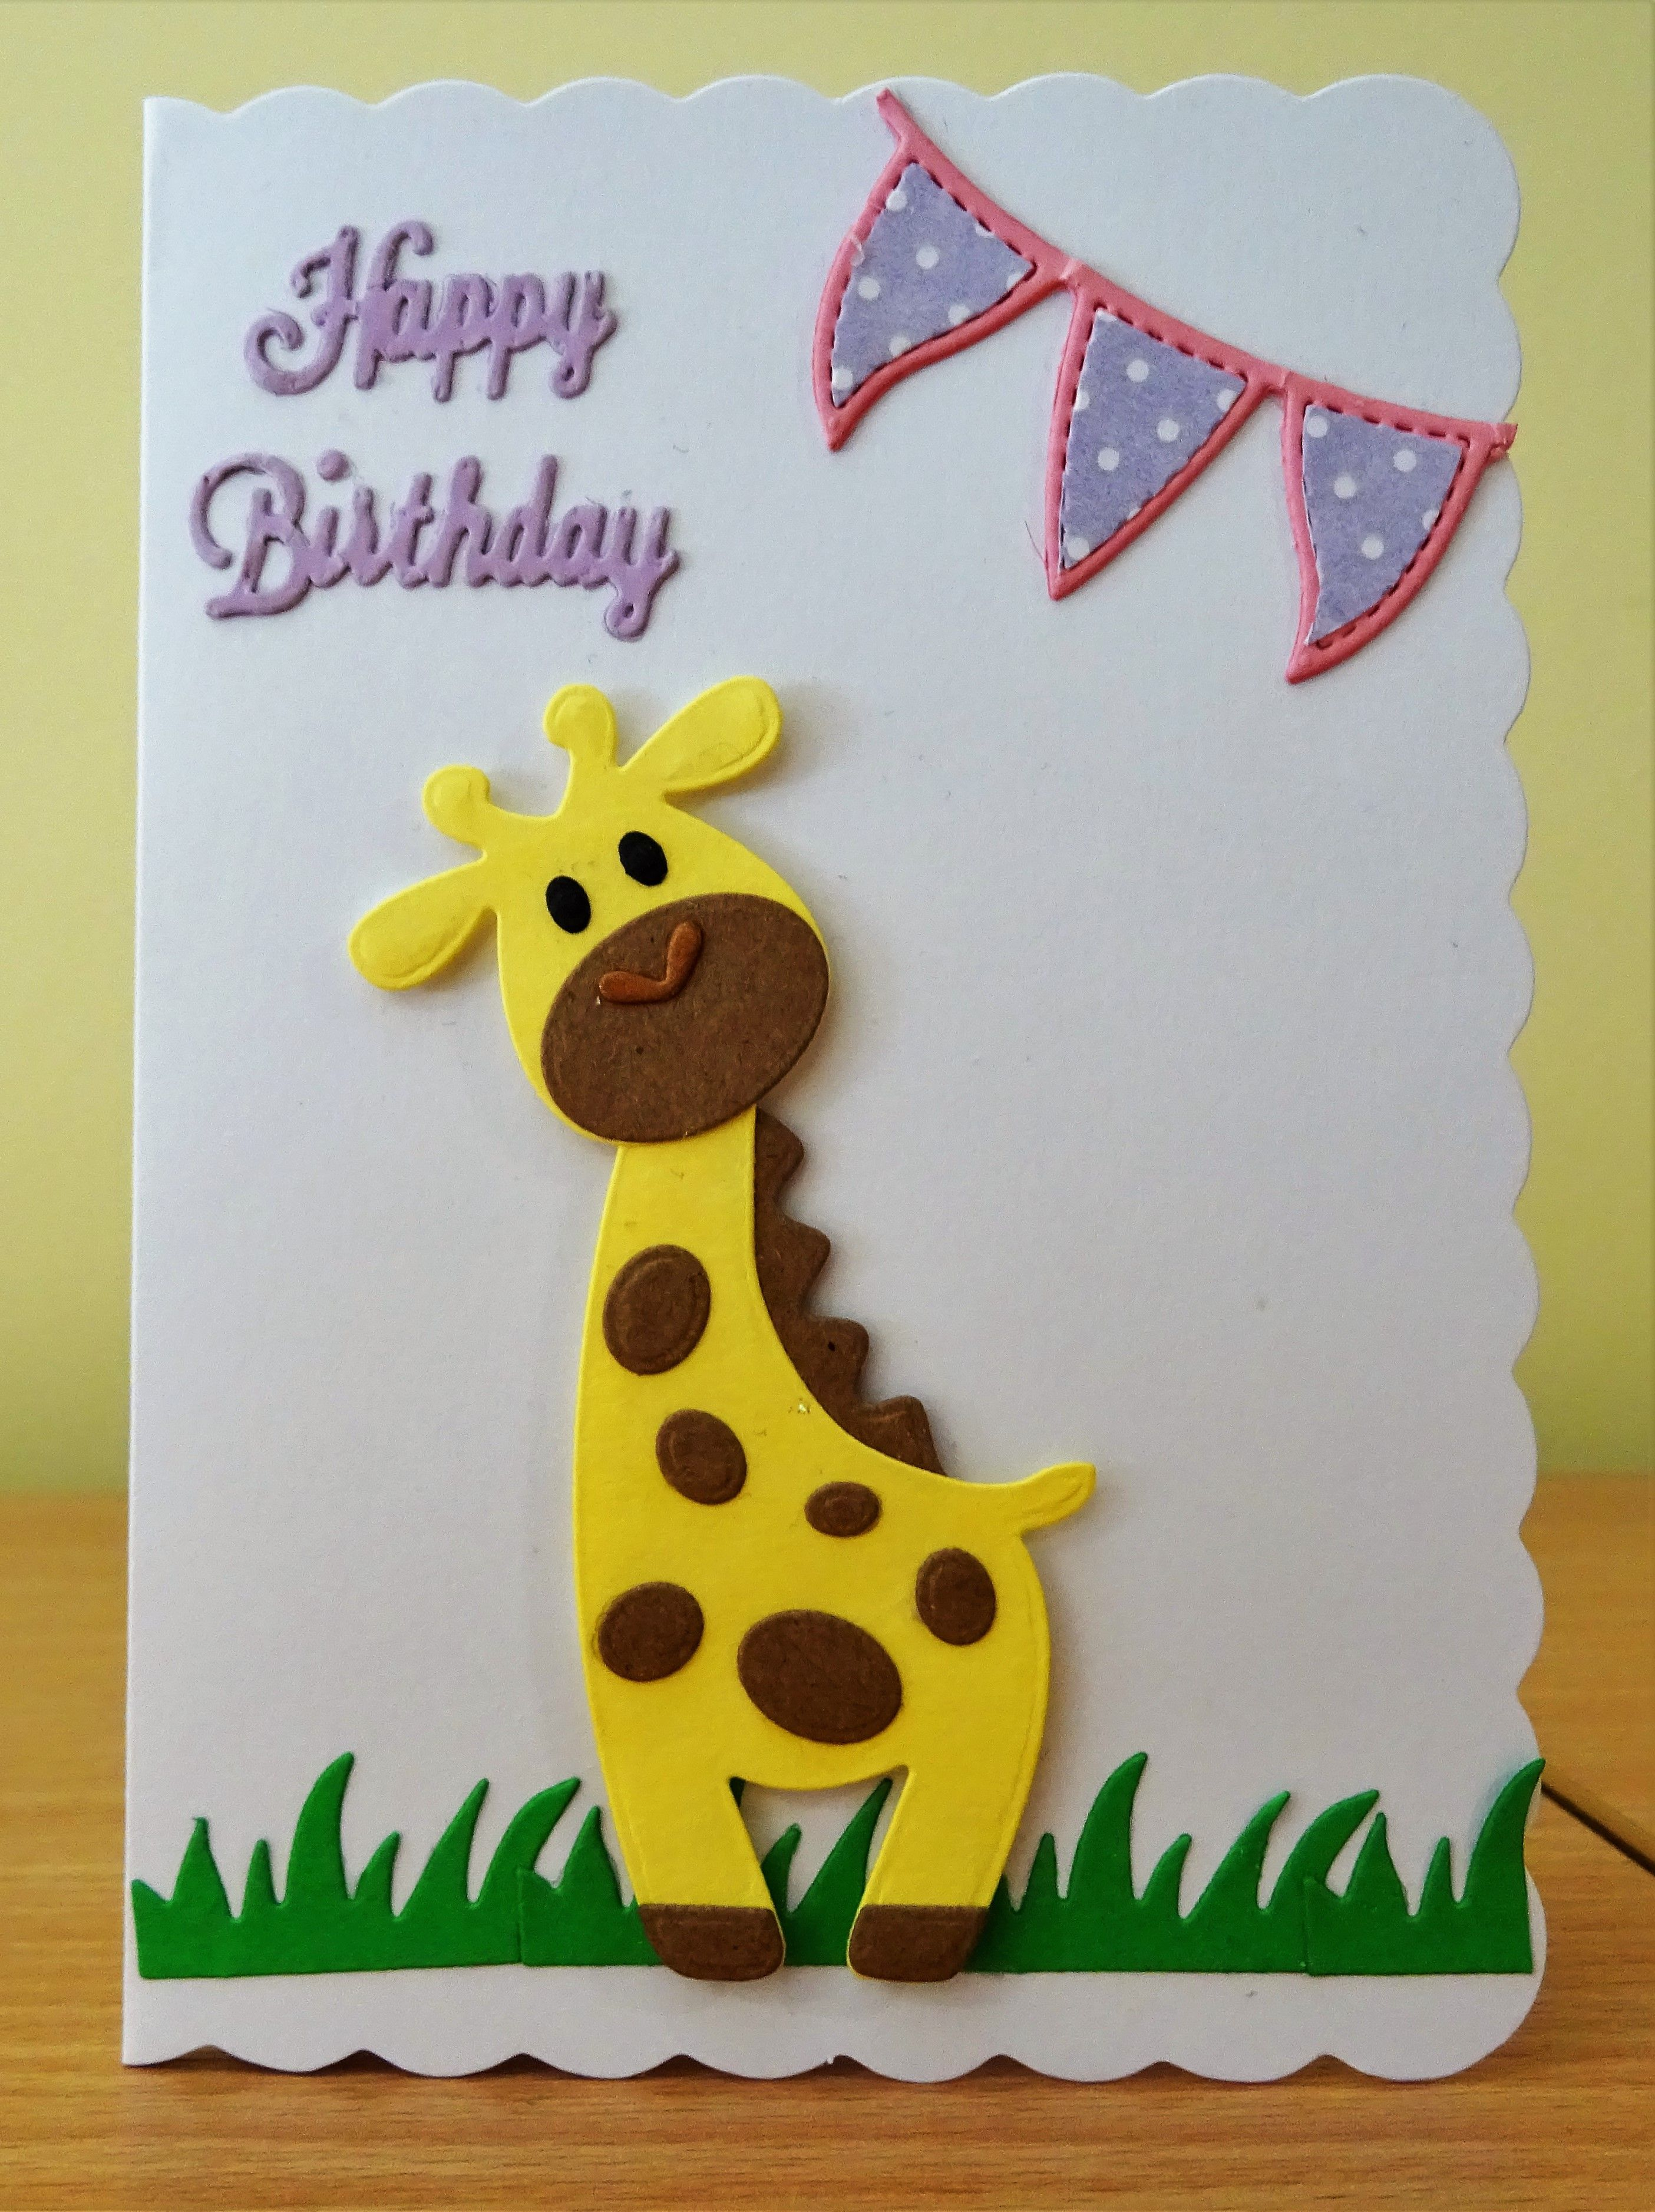 Handmade Birthday Card Marianne Collectables Giraffe Die For More Of My Cards Please Visit The C Cards Handmade Homemade Birthday Cards Handmade Craft Cards